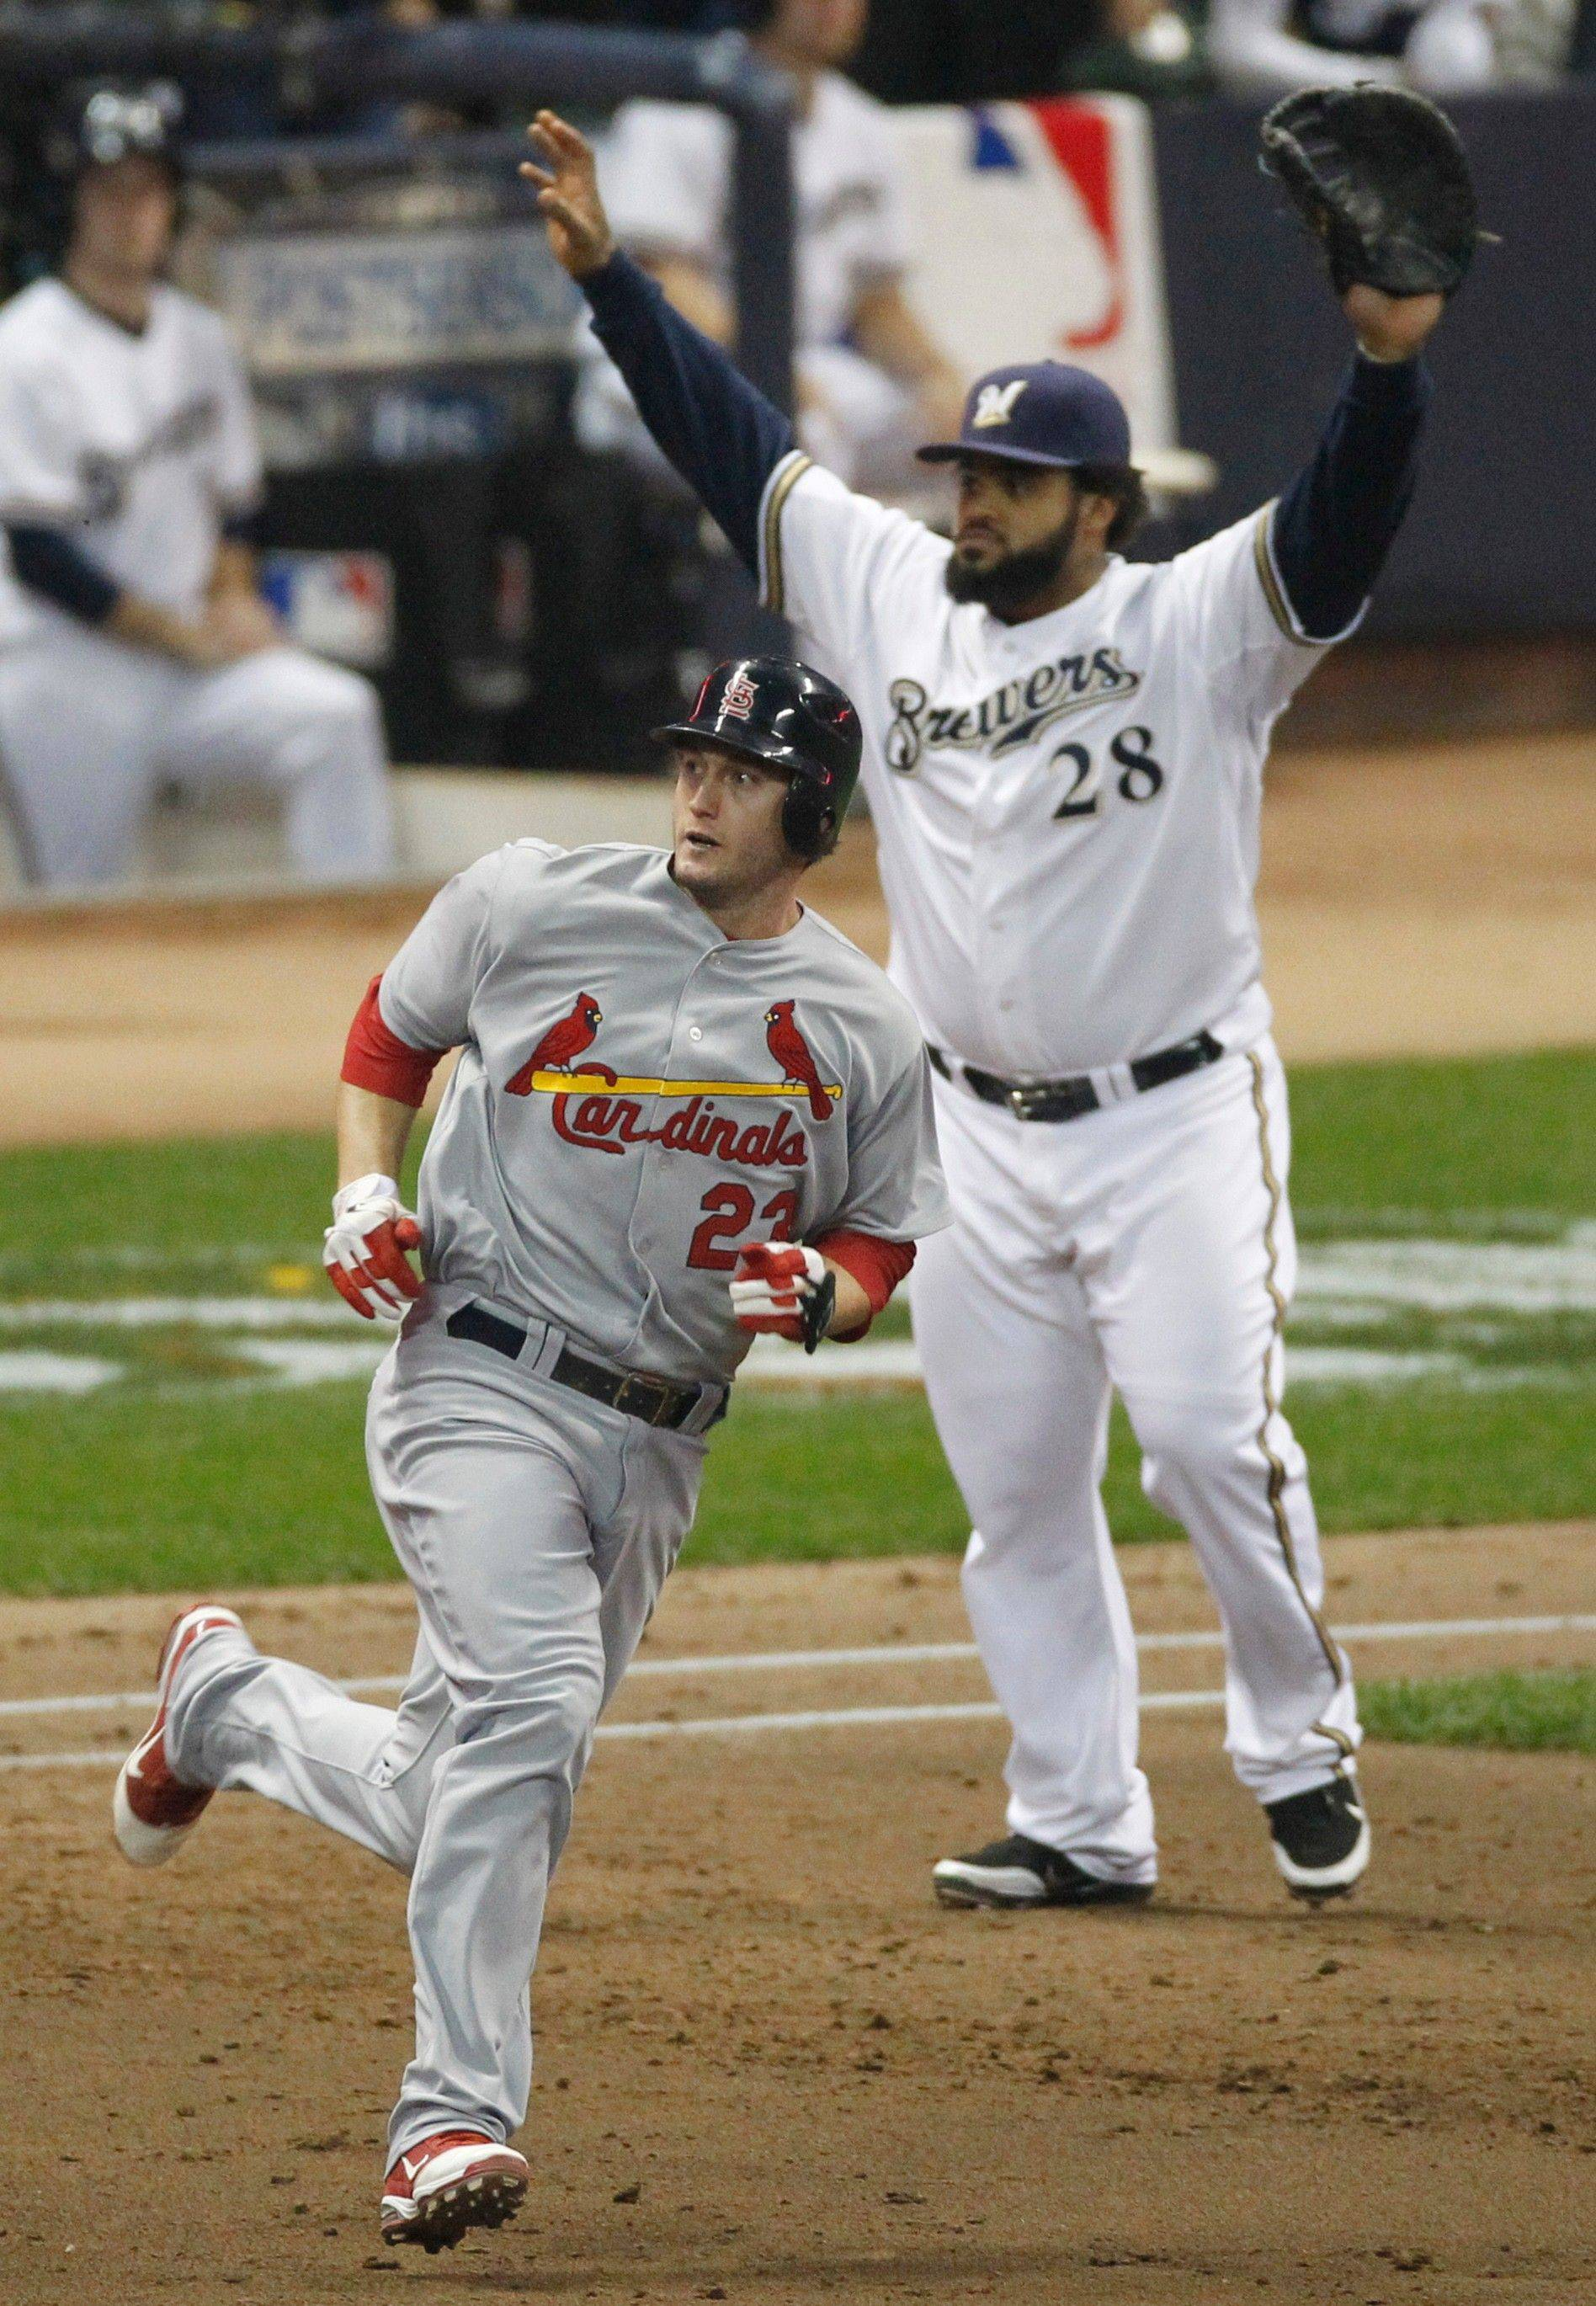 Milwaukee Brewers first baseman Prince Fielder watches as St. Louis Cardinals' David Freese hits a double during the third inning on Sunday night. Freese was named the series MVP.